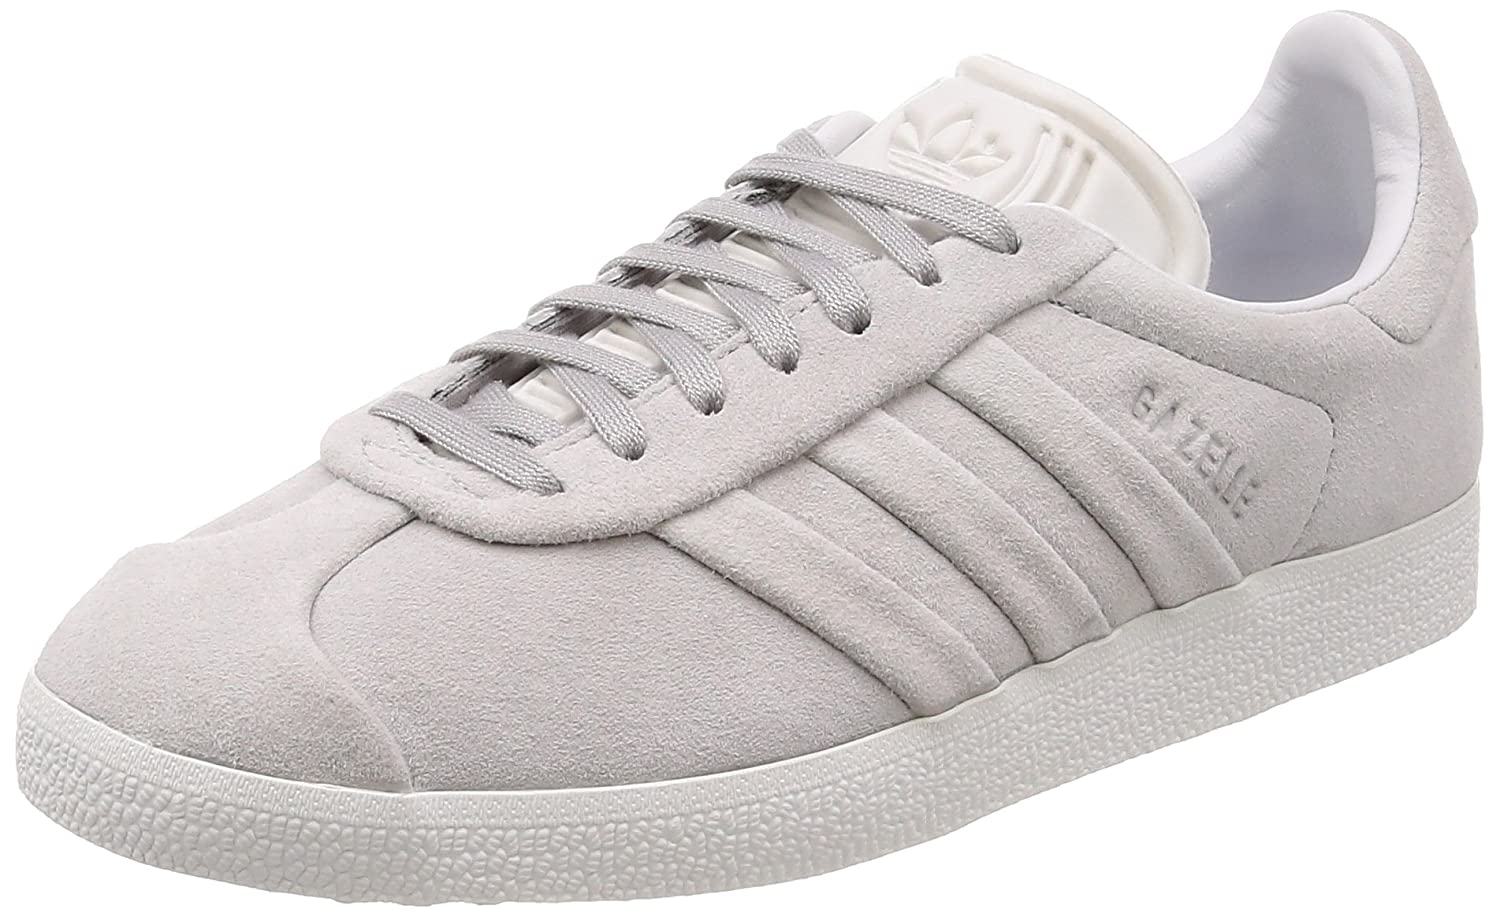 Adidas Damen Gazelle Stitch and Turn Fitnessschuhe